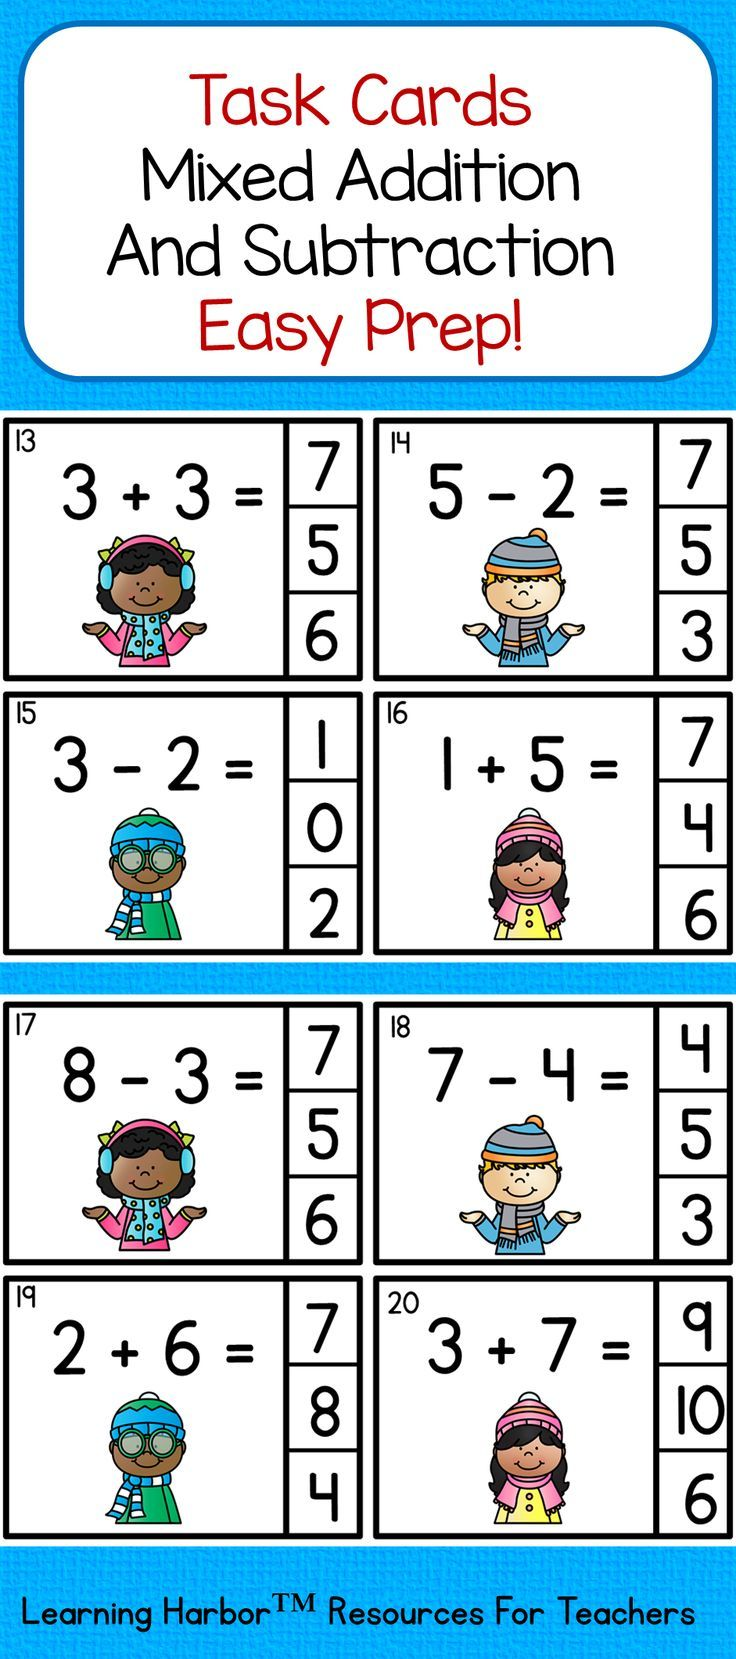 Mixed Addition And Subtraction Within 10 Winter Theme Do You Need An Activity For A Guided Math Group M Addition And Subtraction Online Math Help Task Cards Mixed addition and subtraction within